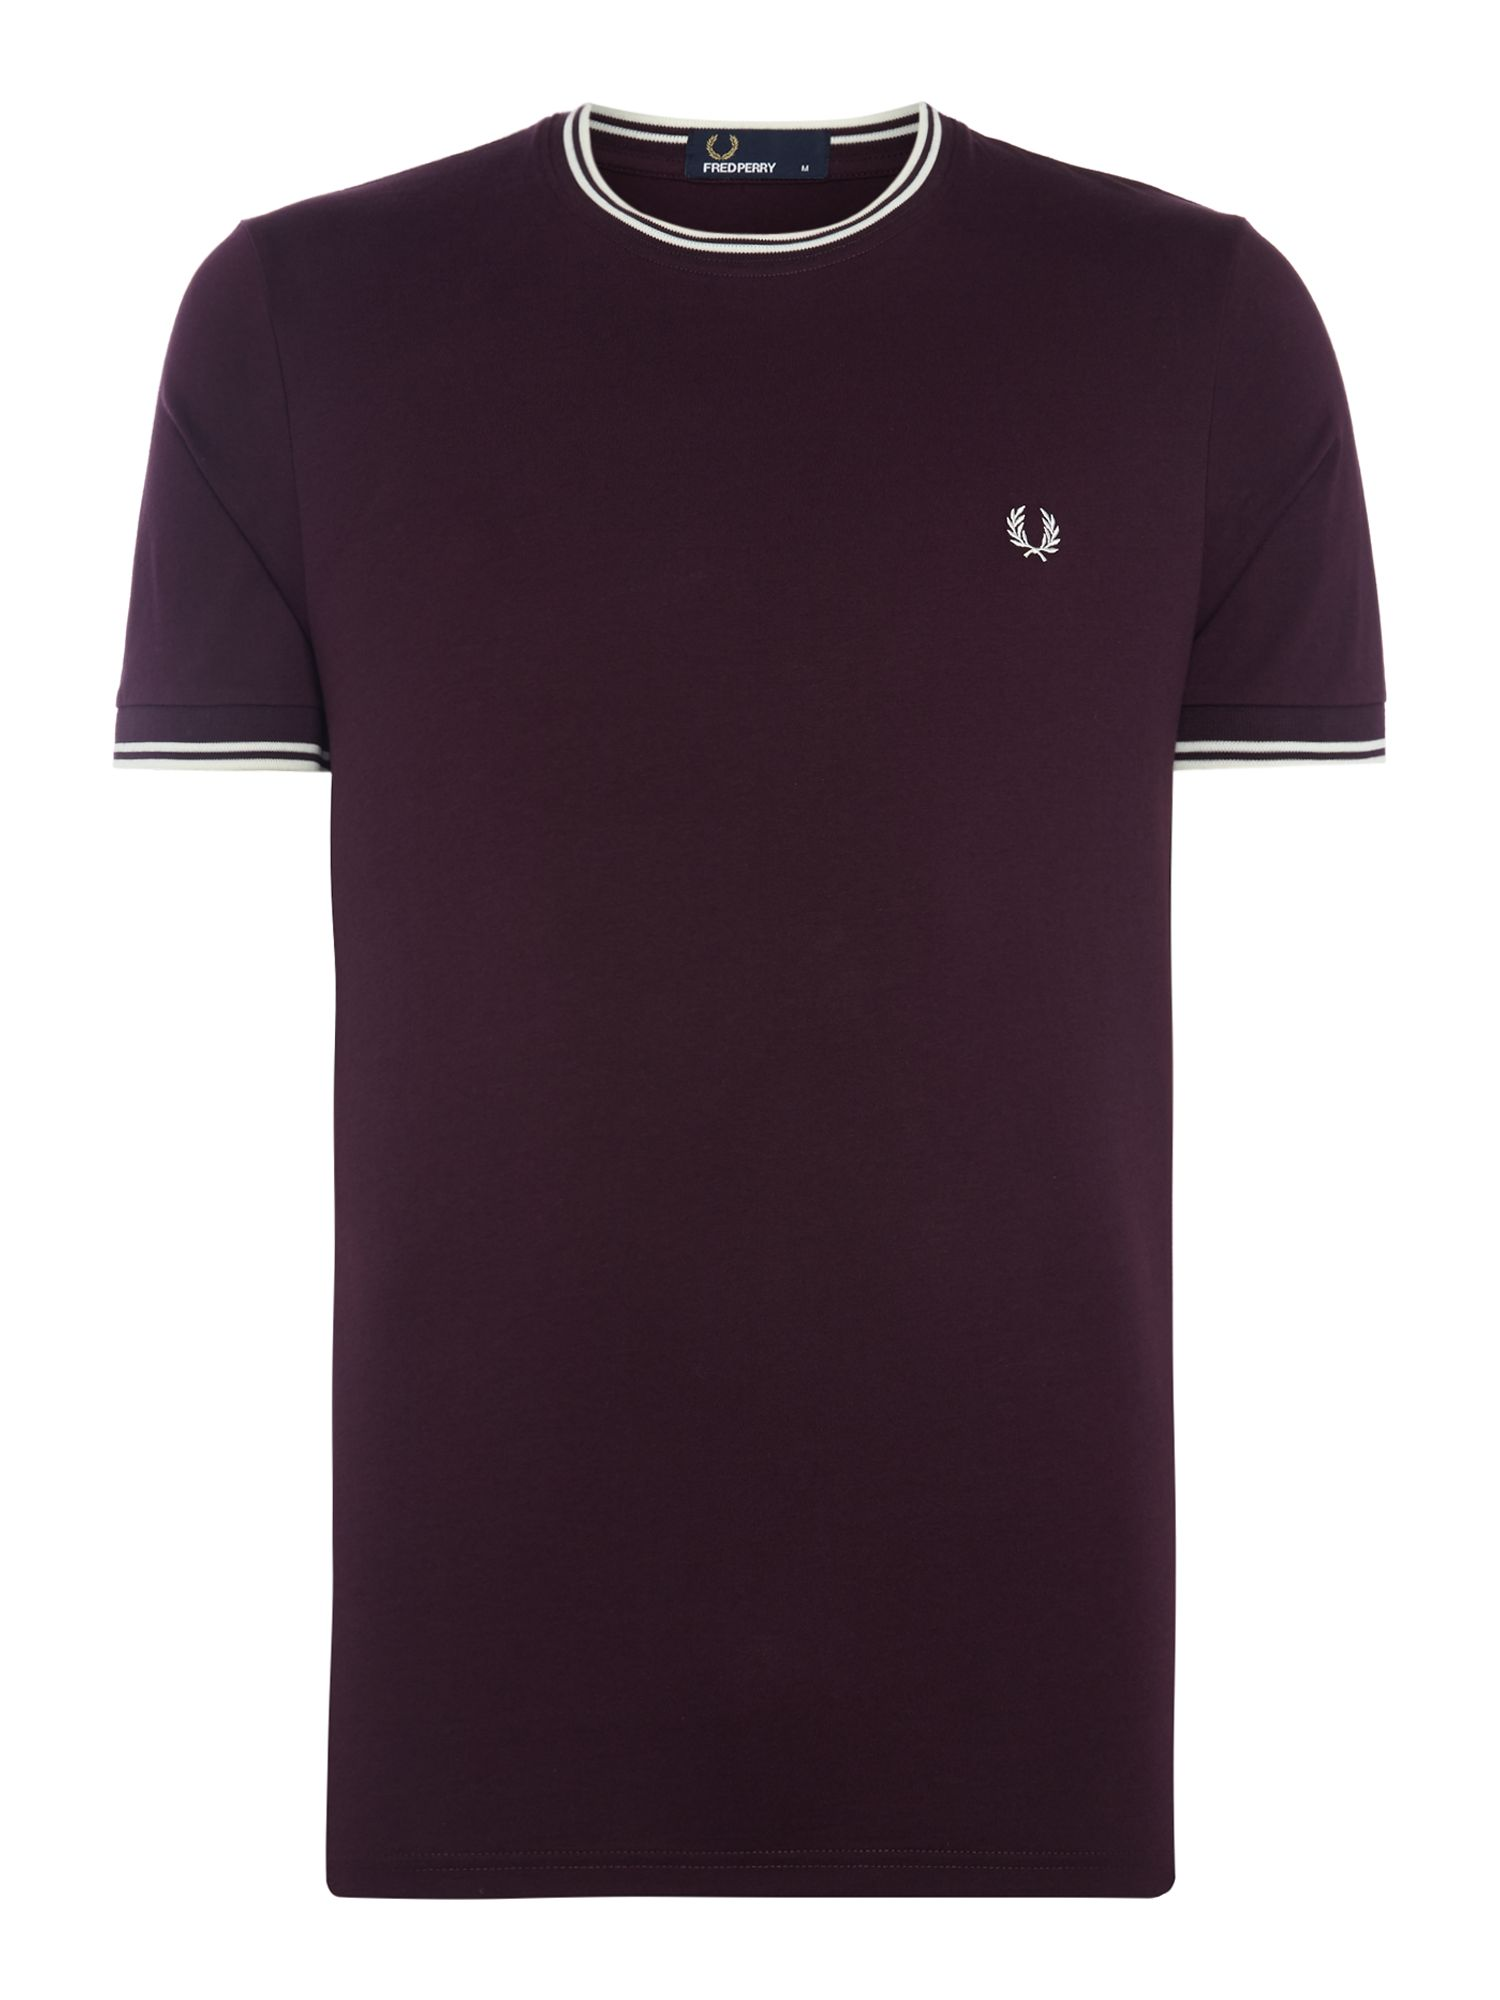 Men's Fred Perry Crew neck twin tipped collar t-shirt, Mahogany